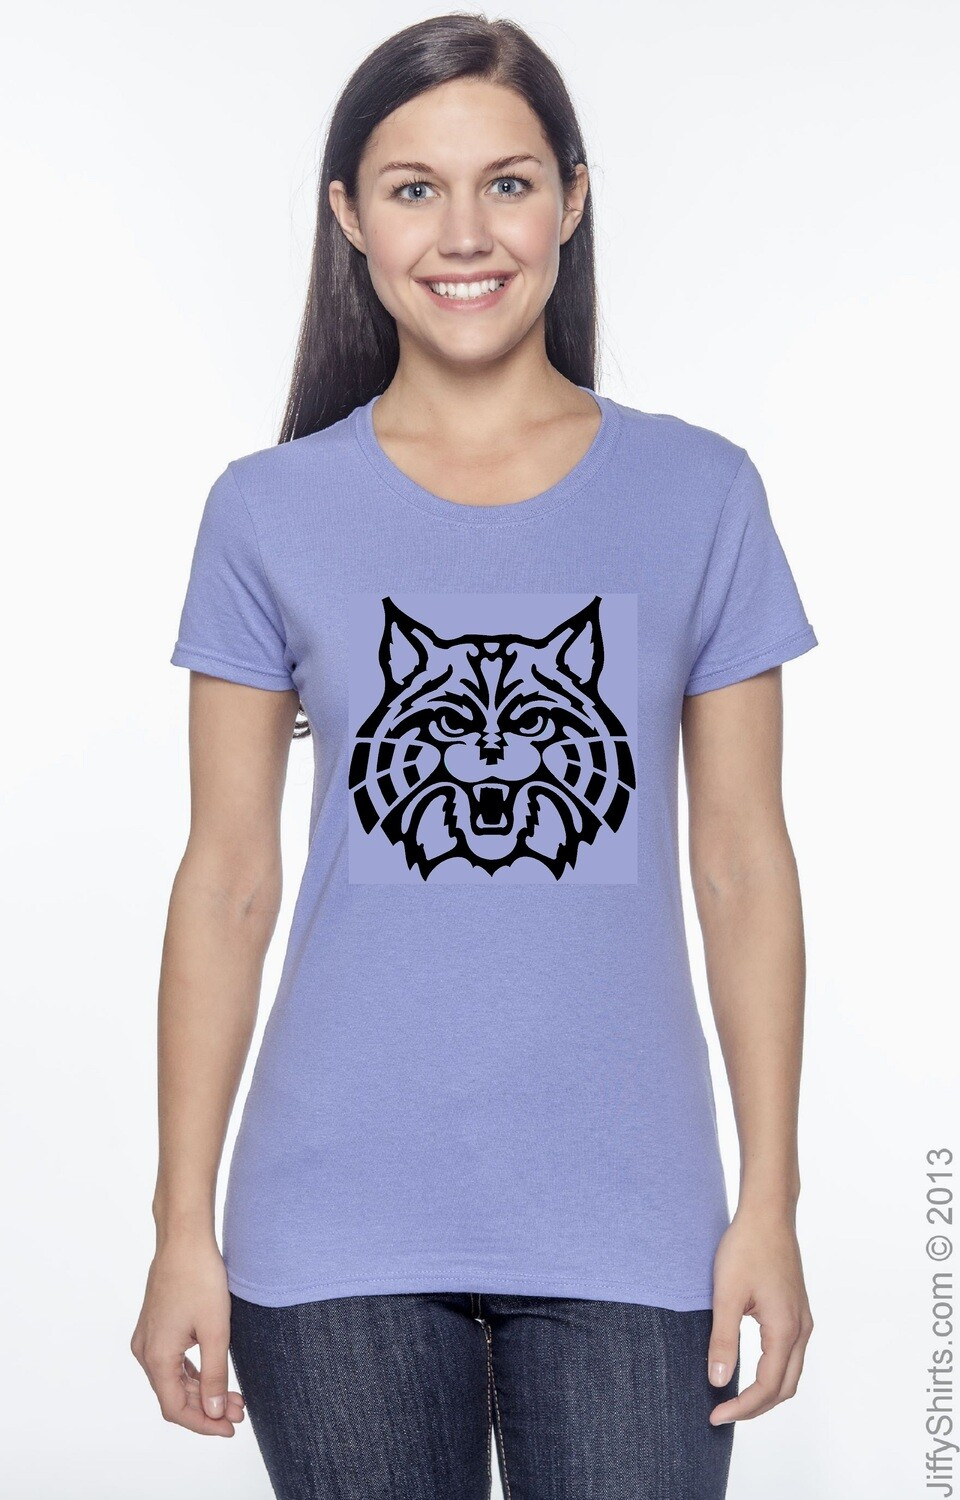 Ladies T-shirt with Cat Design Ready to wear